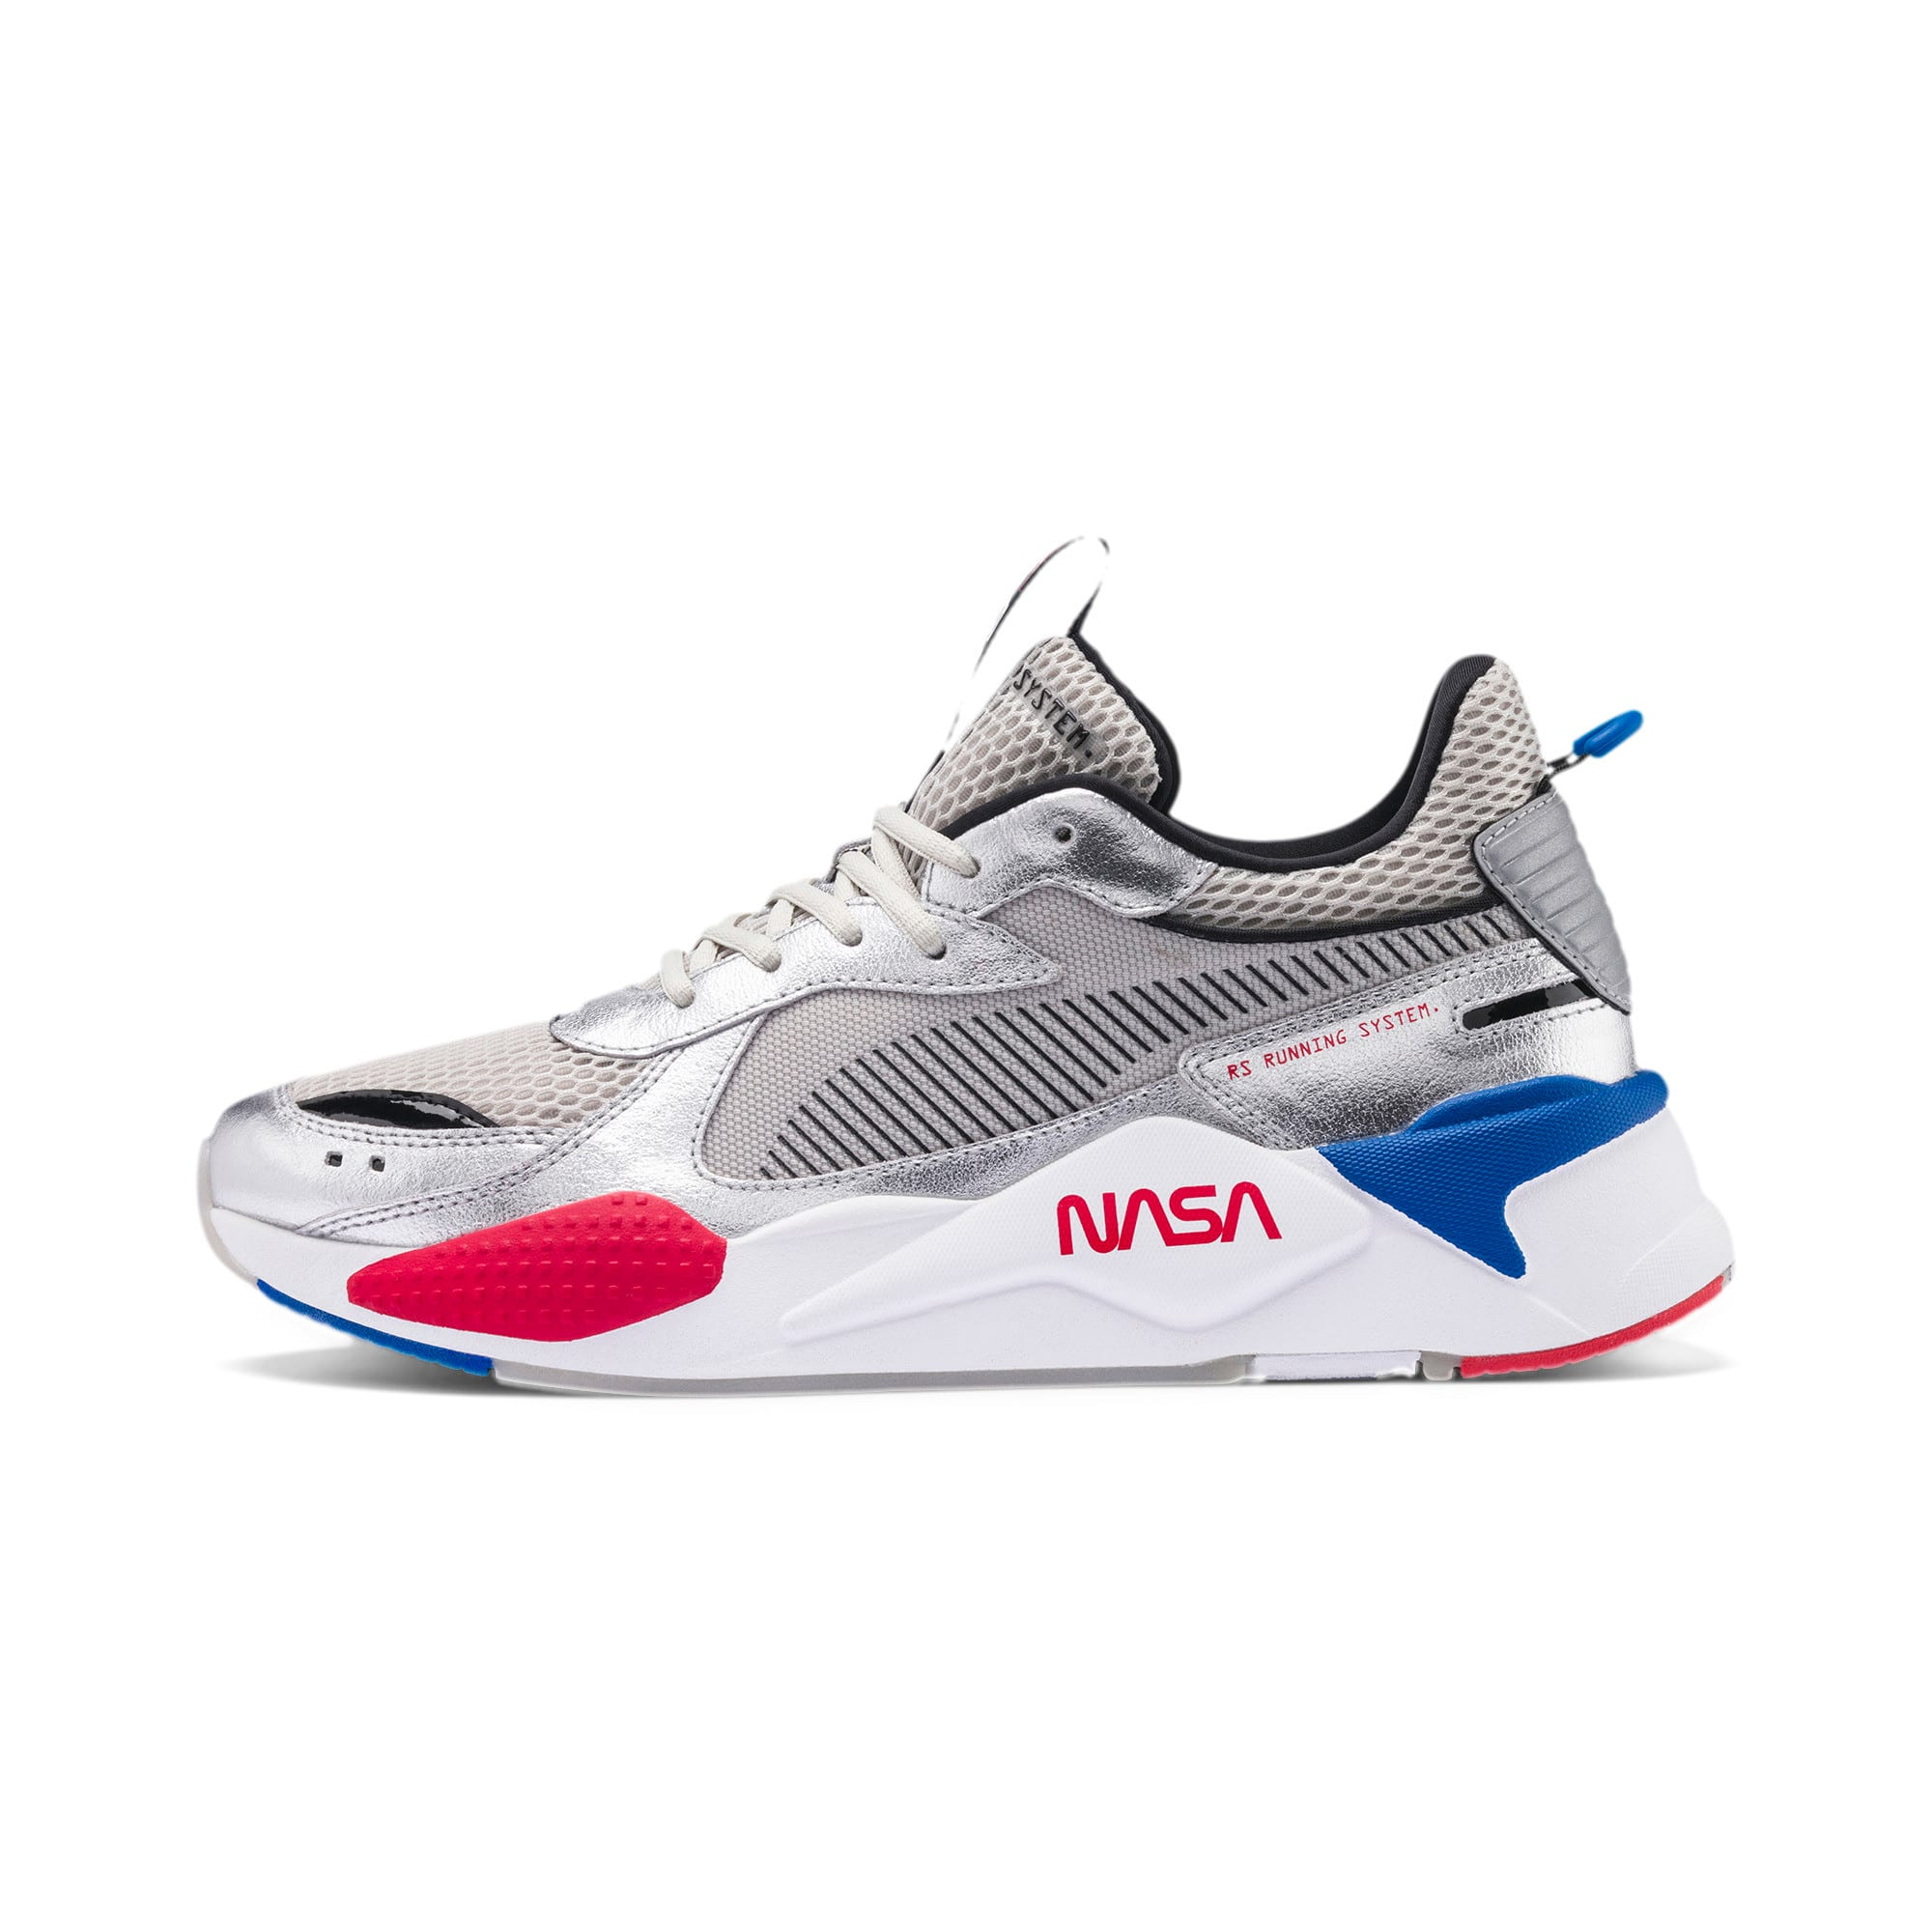 Thumbnail 1 of RS-X Space Explorer Trainers, Puma Silver-Gray Violet, medium